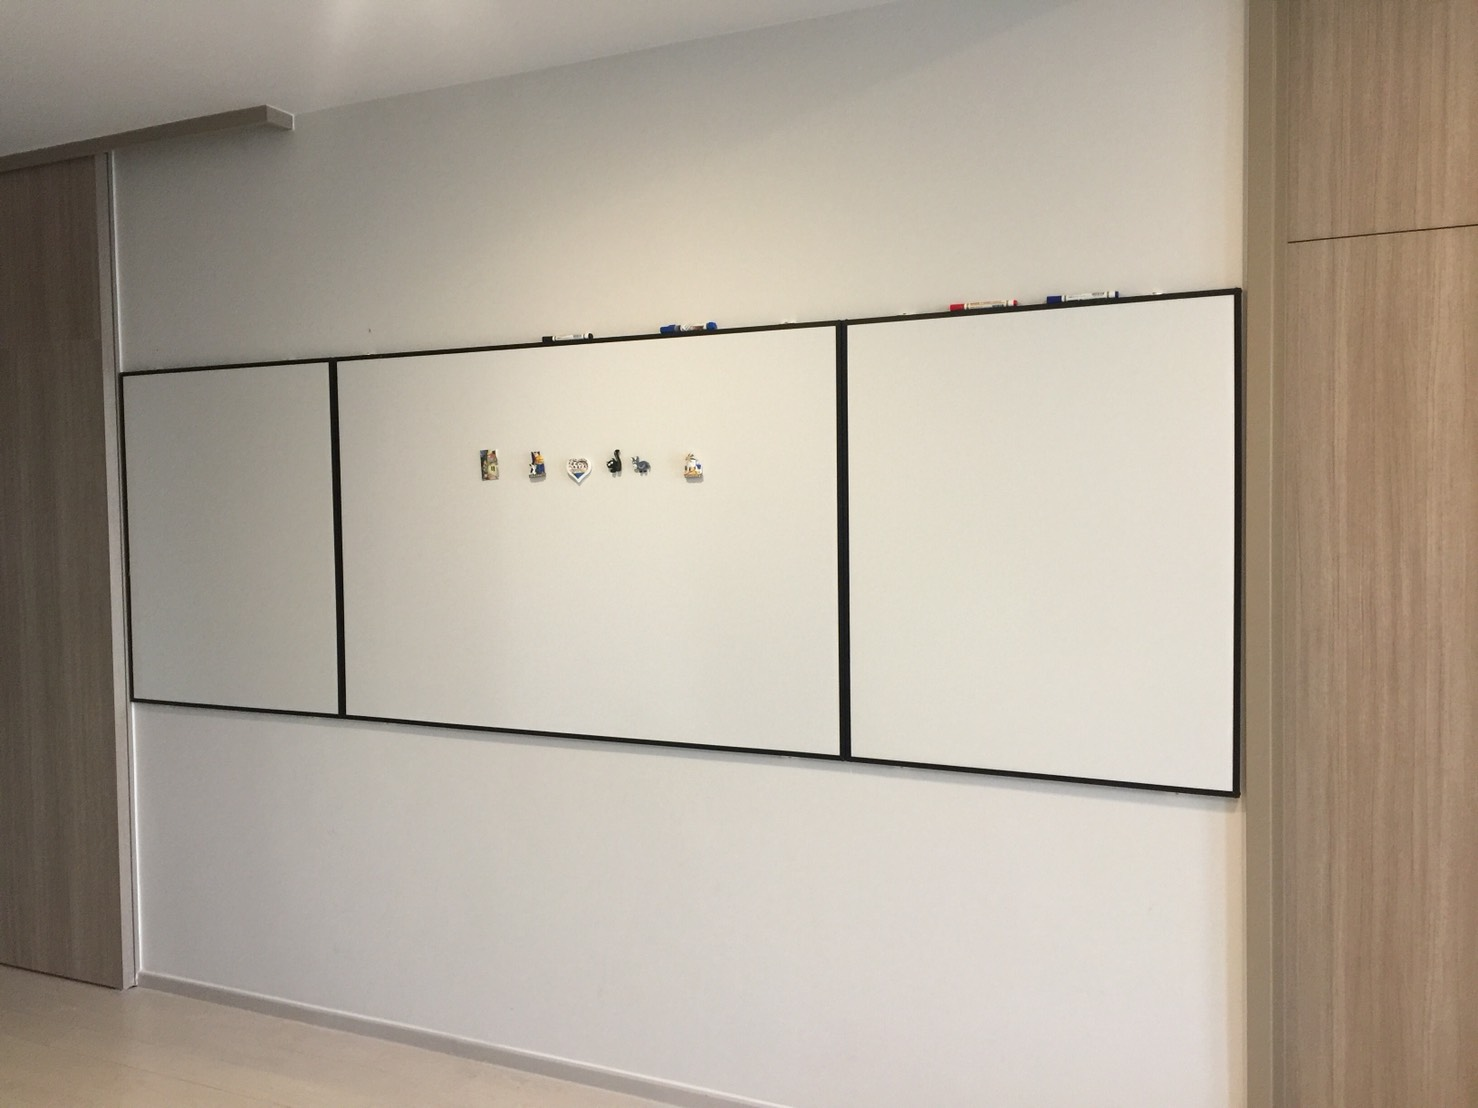 Whiteboard-for-school